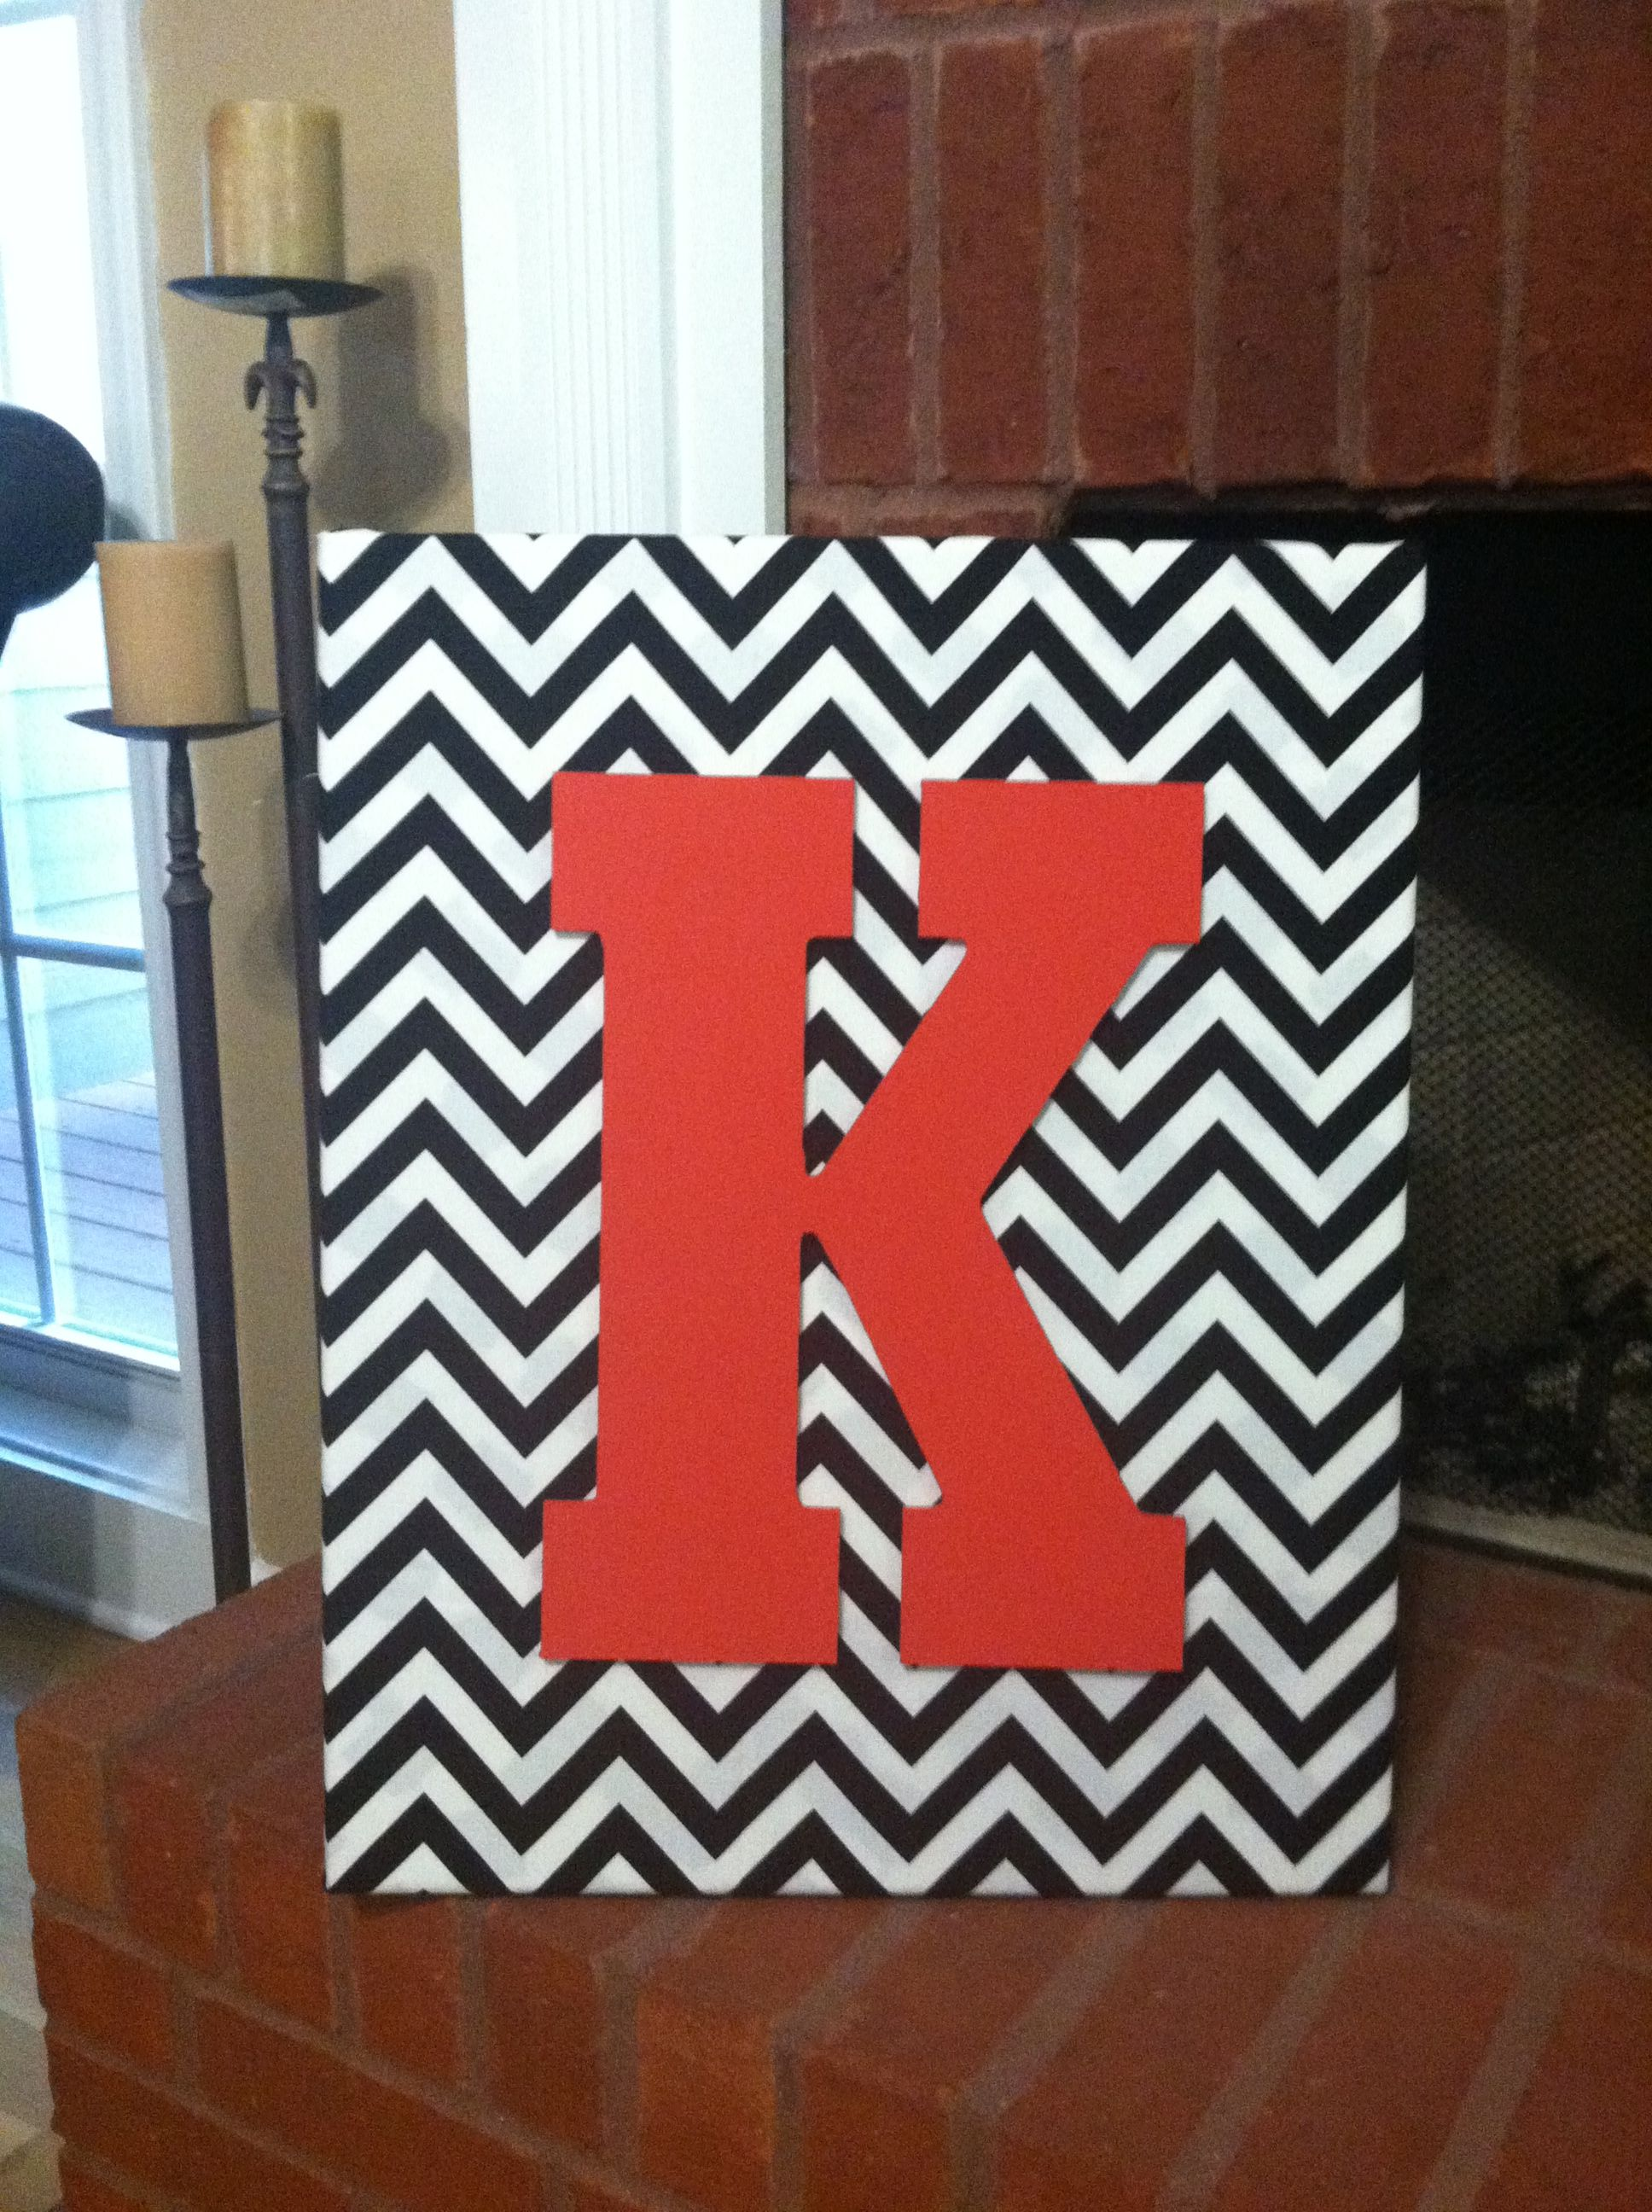 I finally decided to be crafty! Love chevron ❤ Thanks Pinterest for the idea!